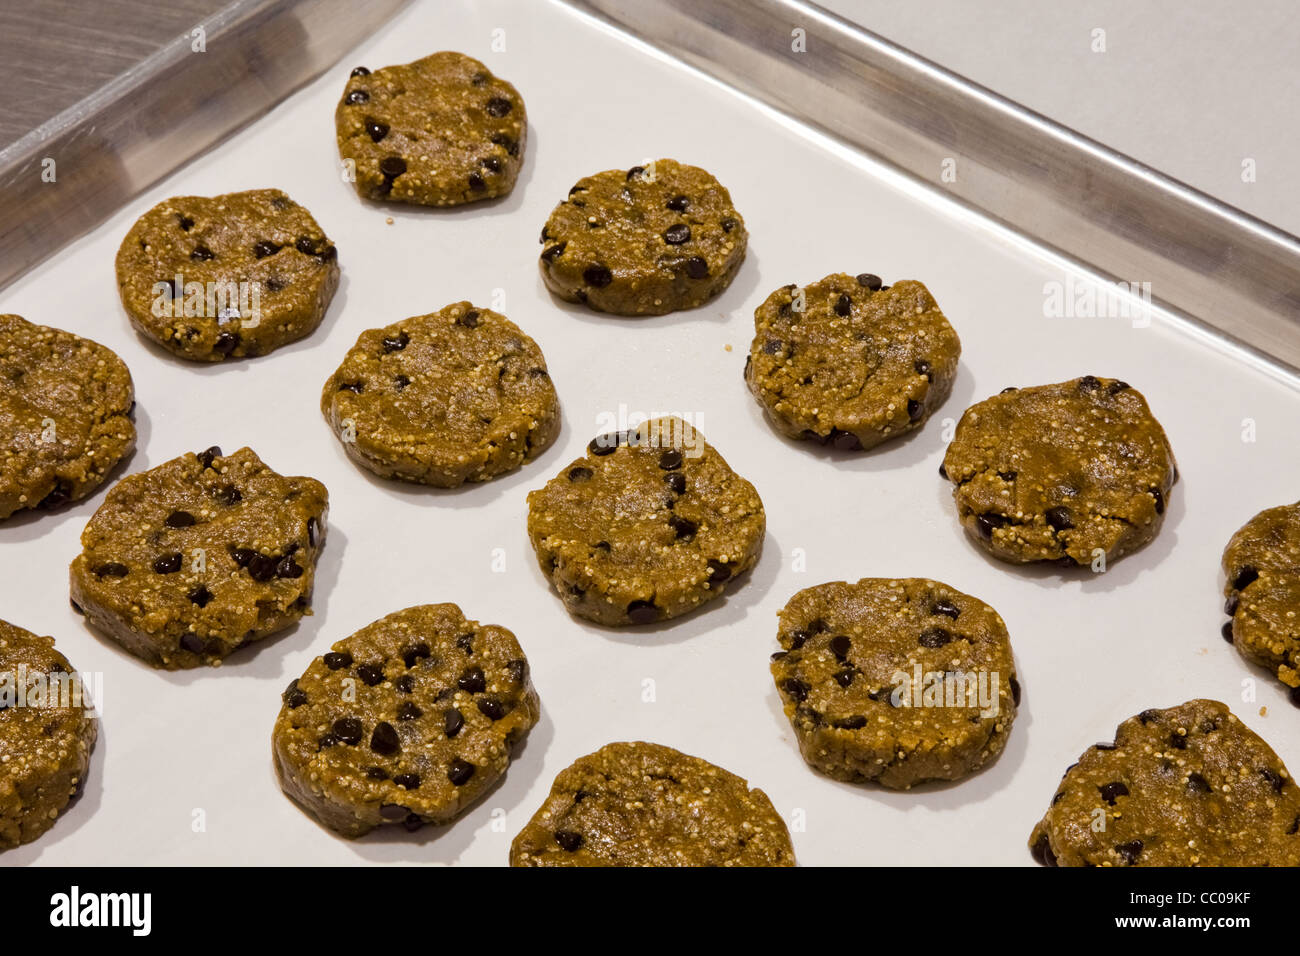 An array of gluten-free cookies waiting to be baked - Stock Image